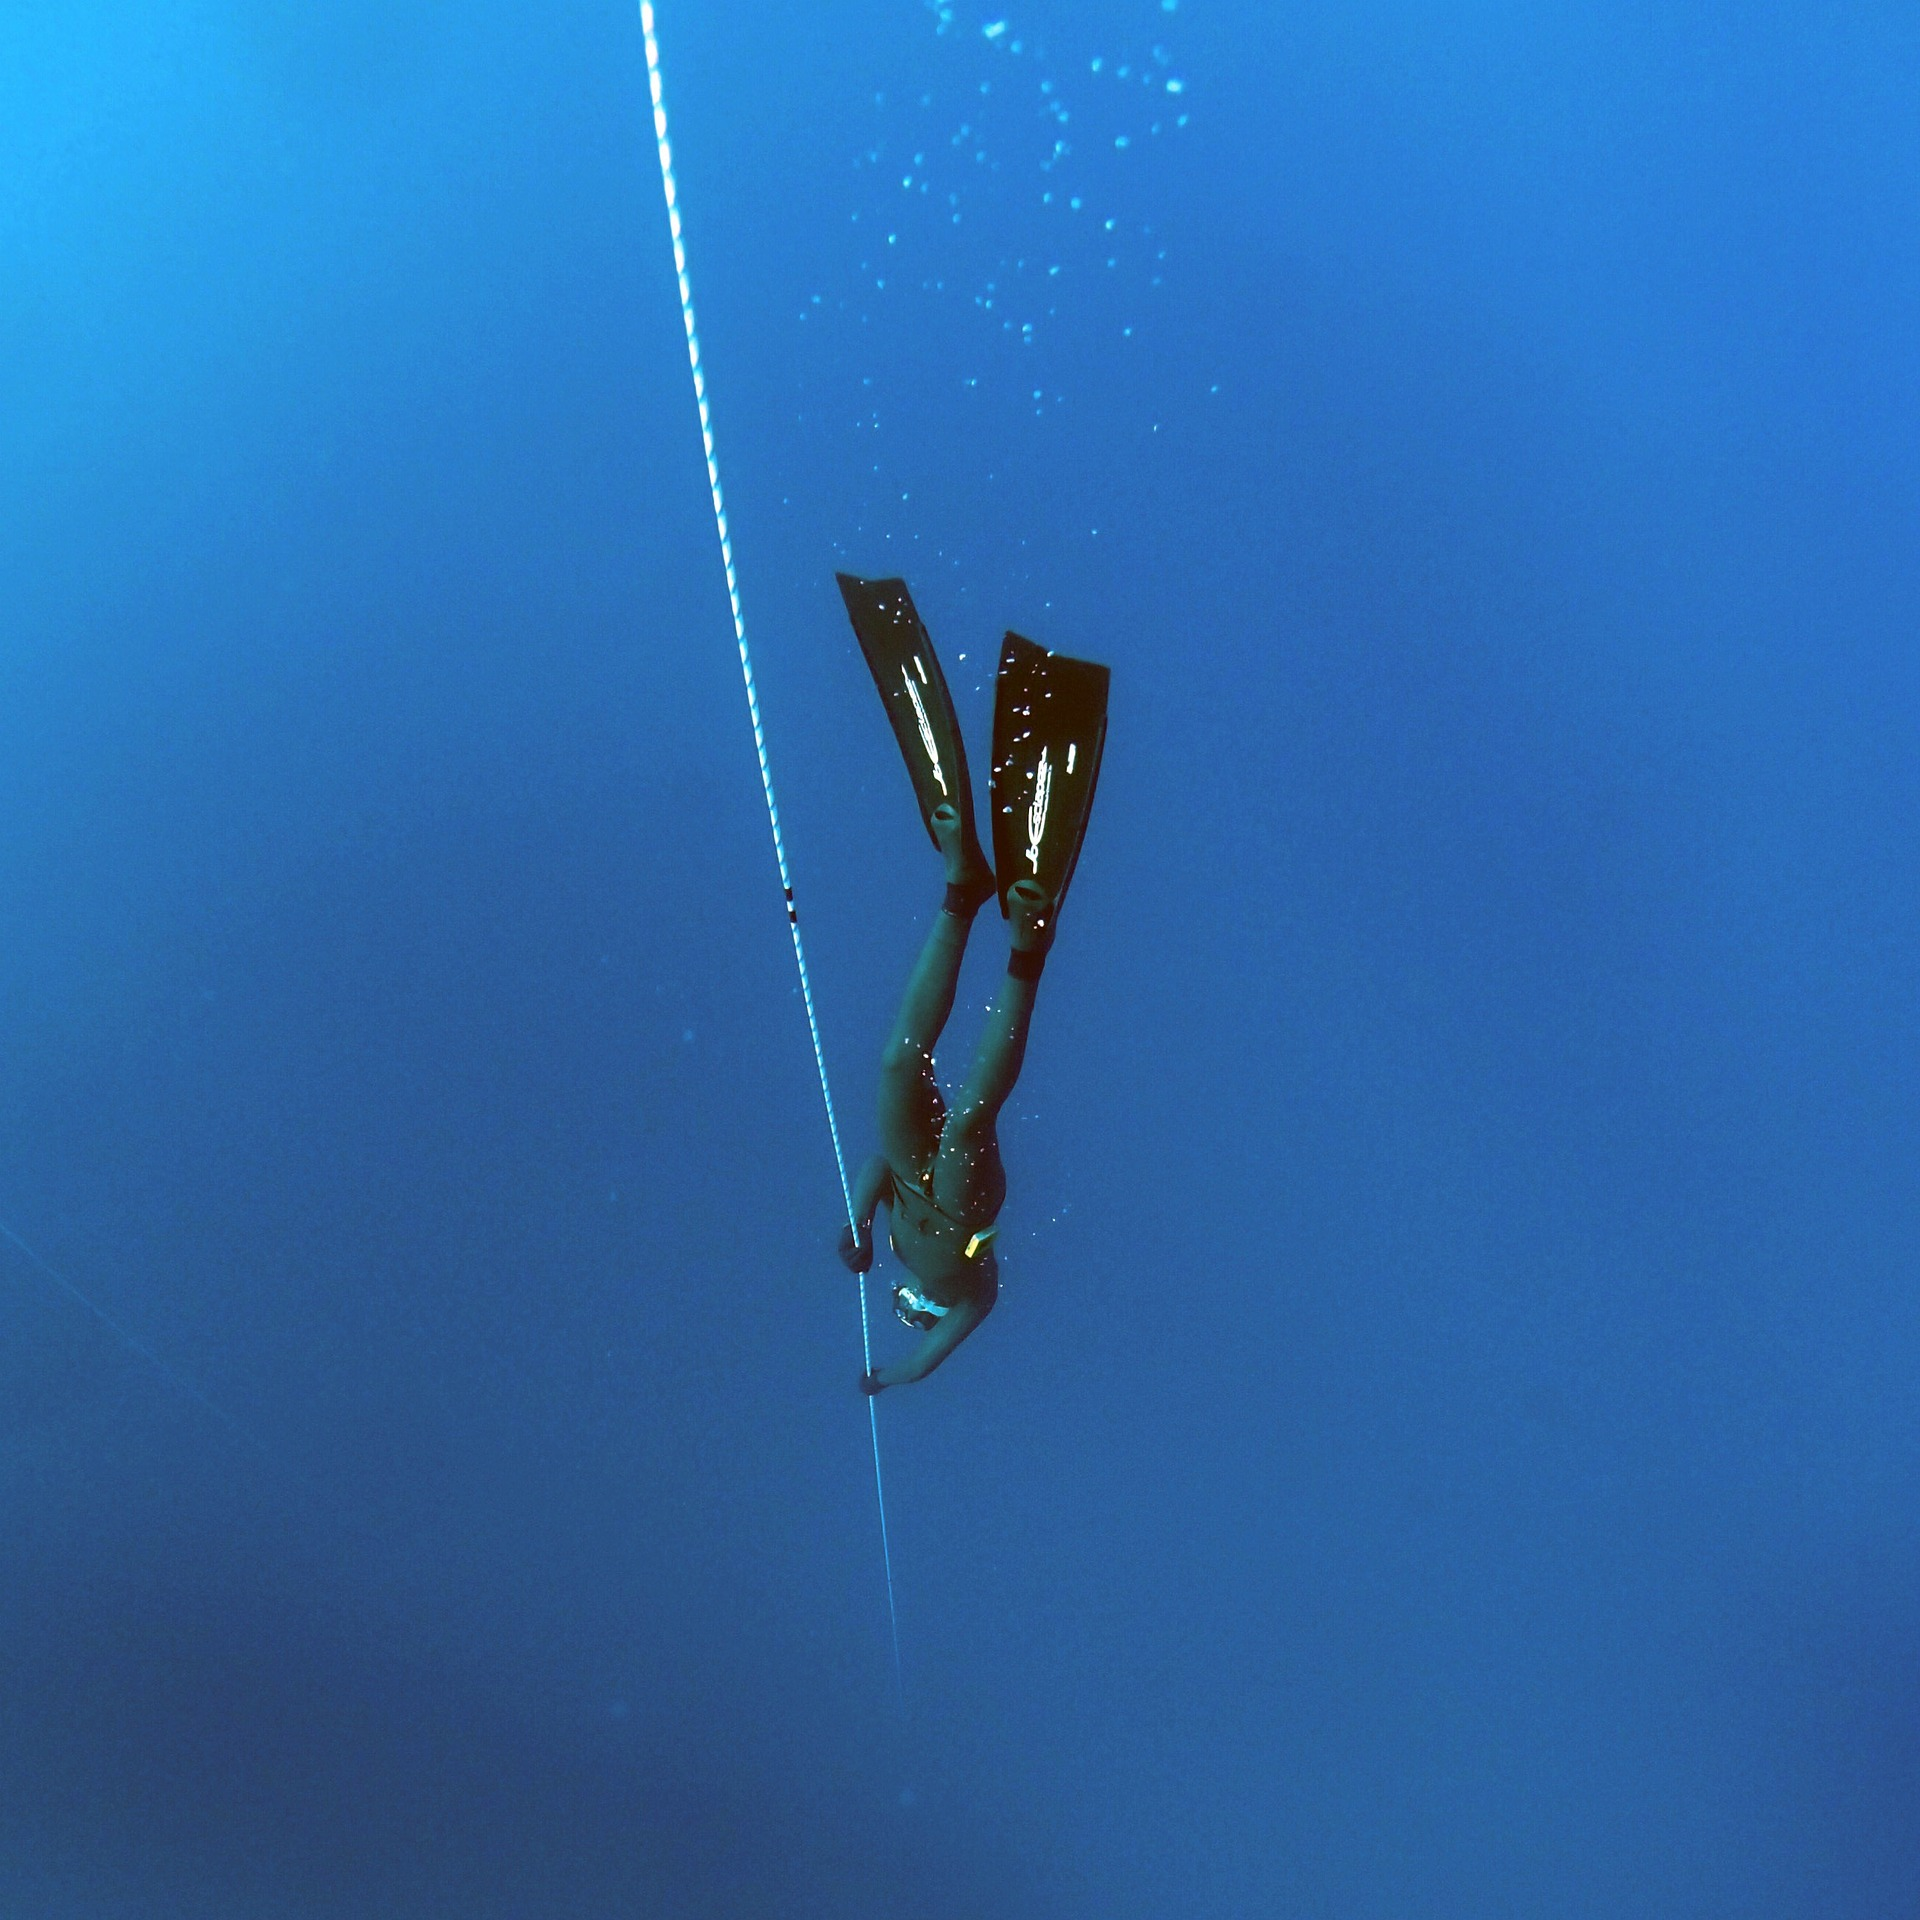 freediving-1383103_1920